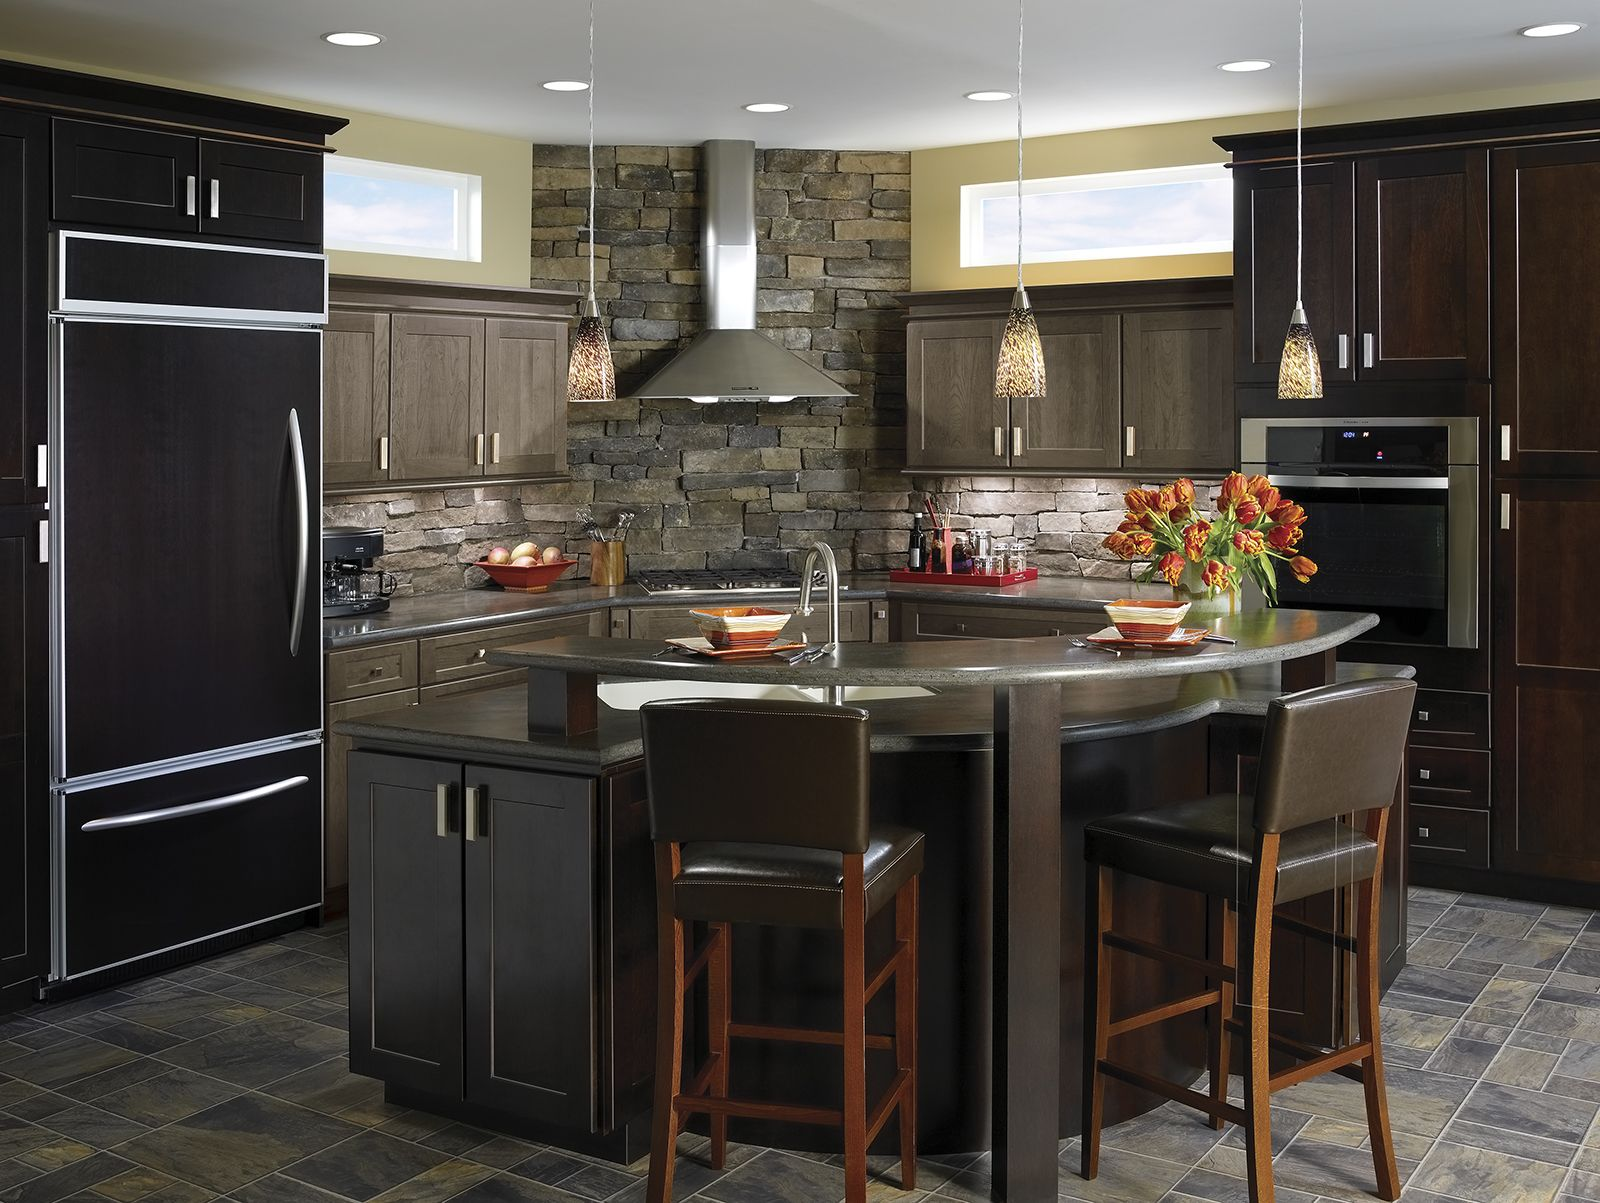 Perfect Armstrong Kitchen Cabinet Hardware And Review In 2020 Kitchen Cabinet Colors Kitchen Design Espresso Kitchen Cabinets